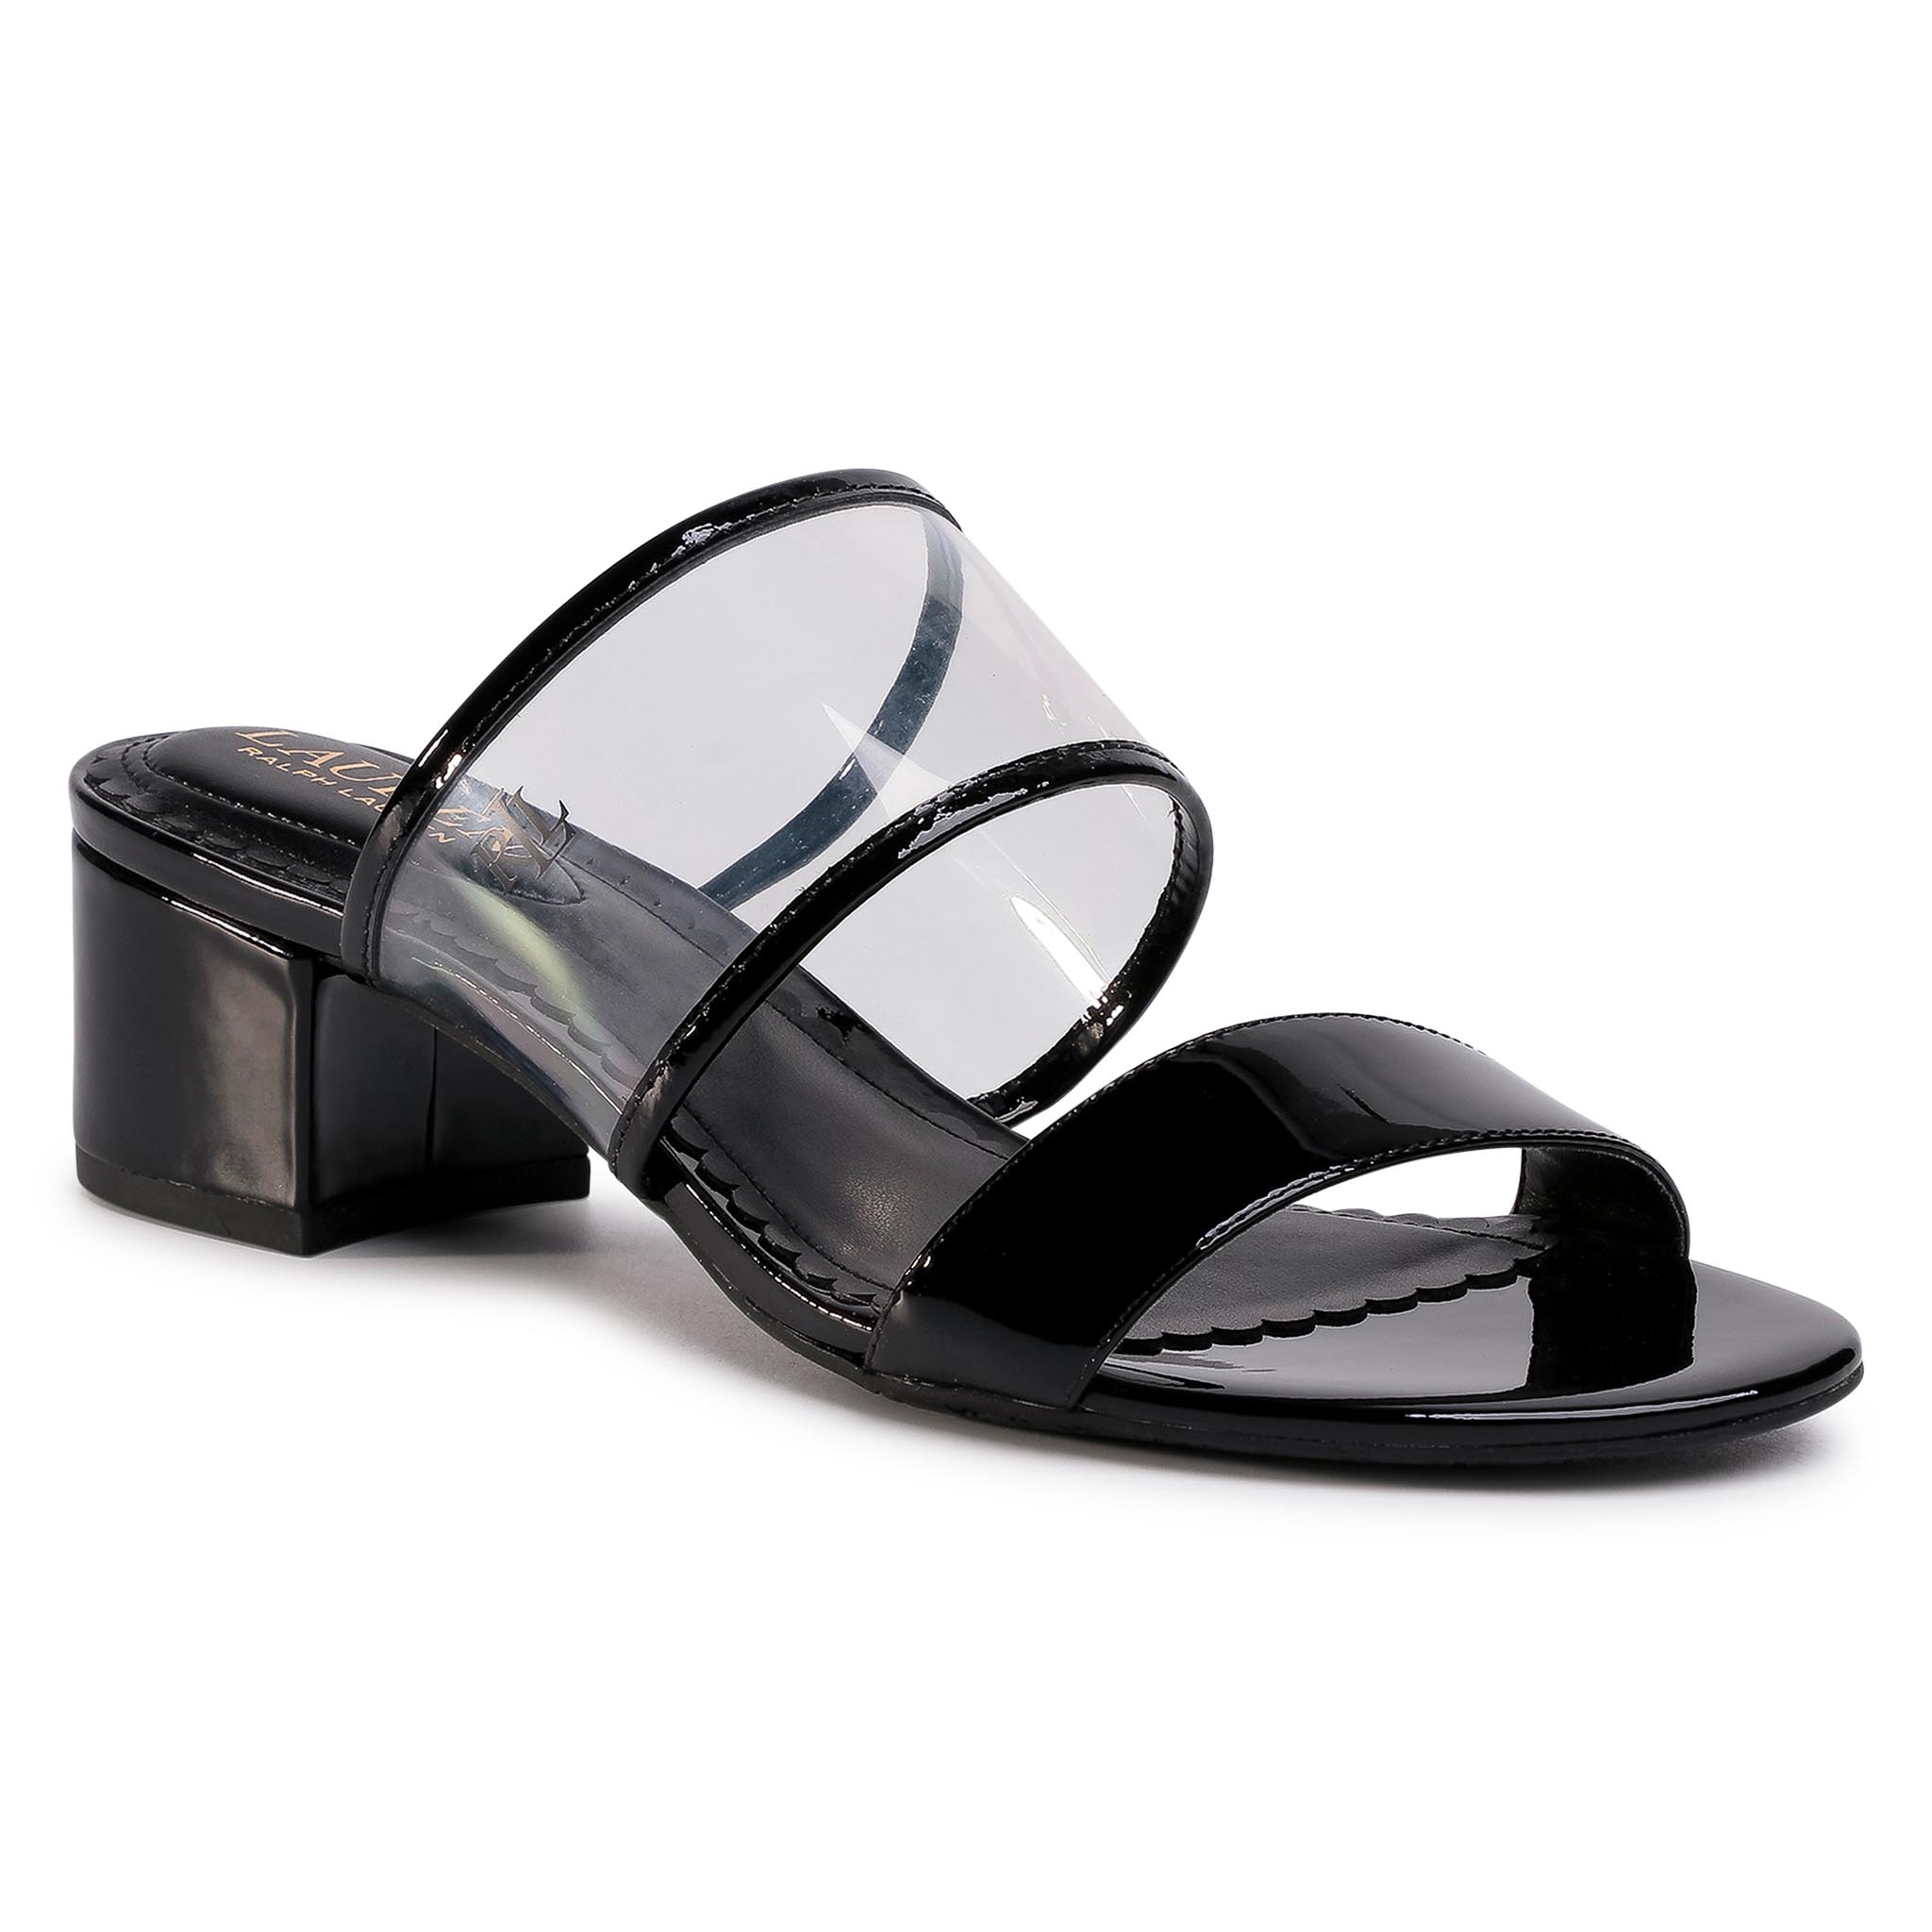 Șlapi Lauren Ralph Lauren - Whitni 802784394001 Clear/Blk imagine epantofi.ro 2021